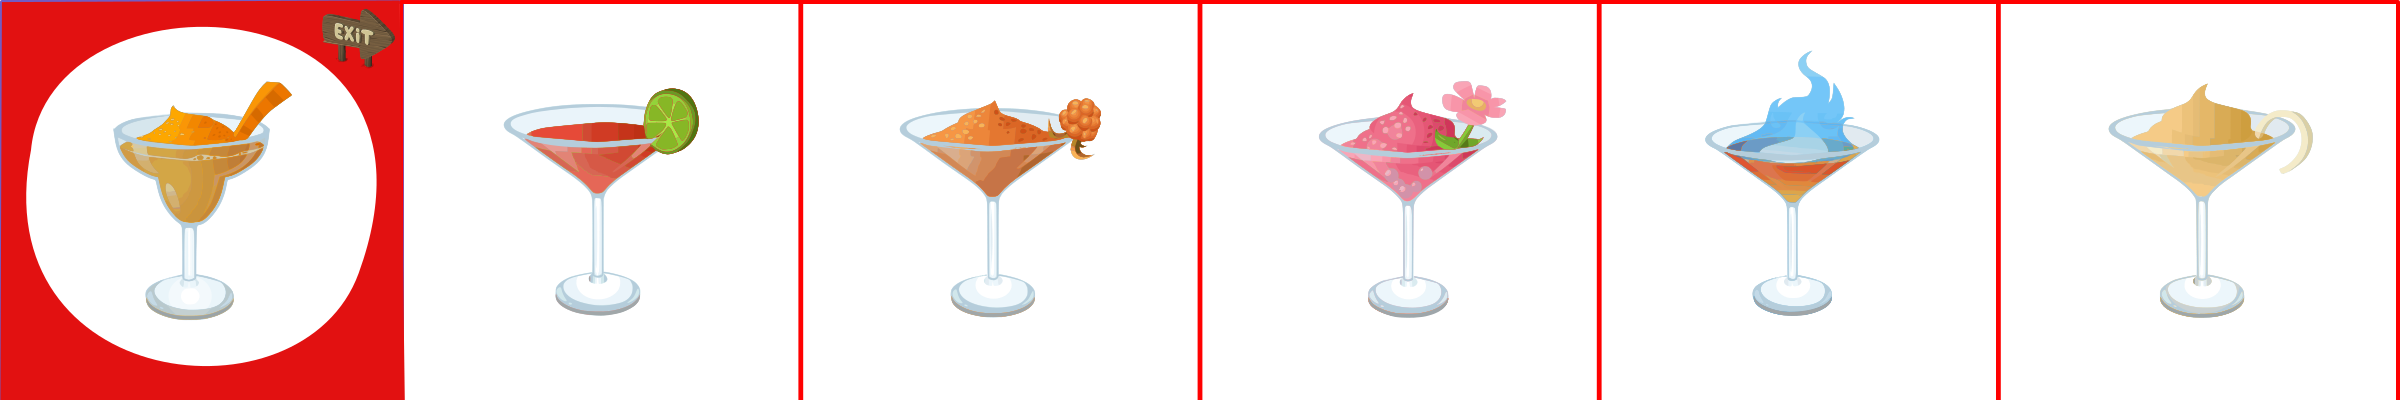 Glitch clipart pink lady Presentation glitch glitch presentation Drink